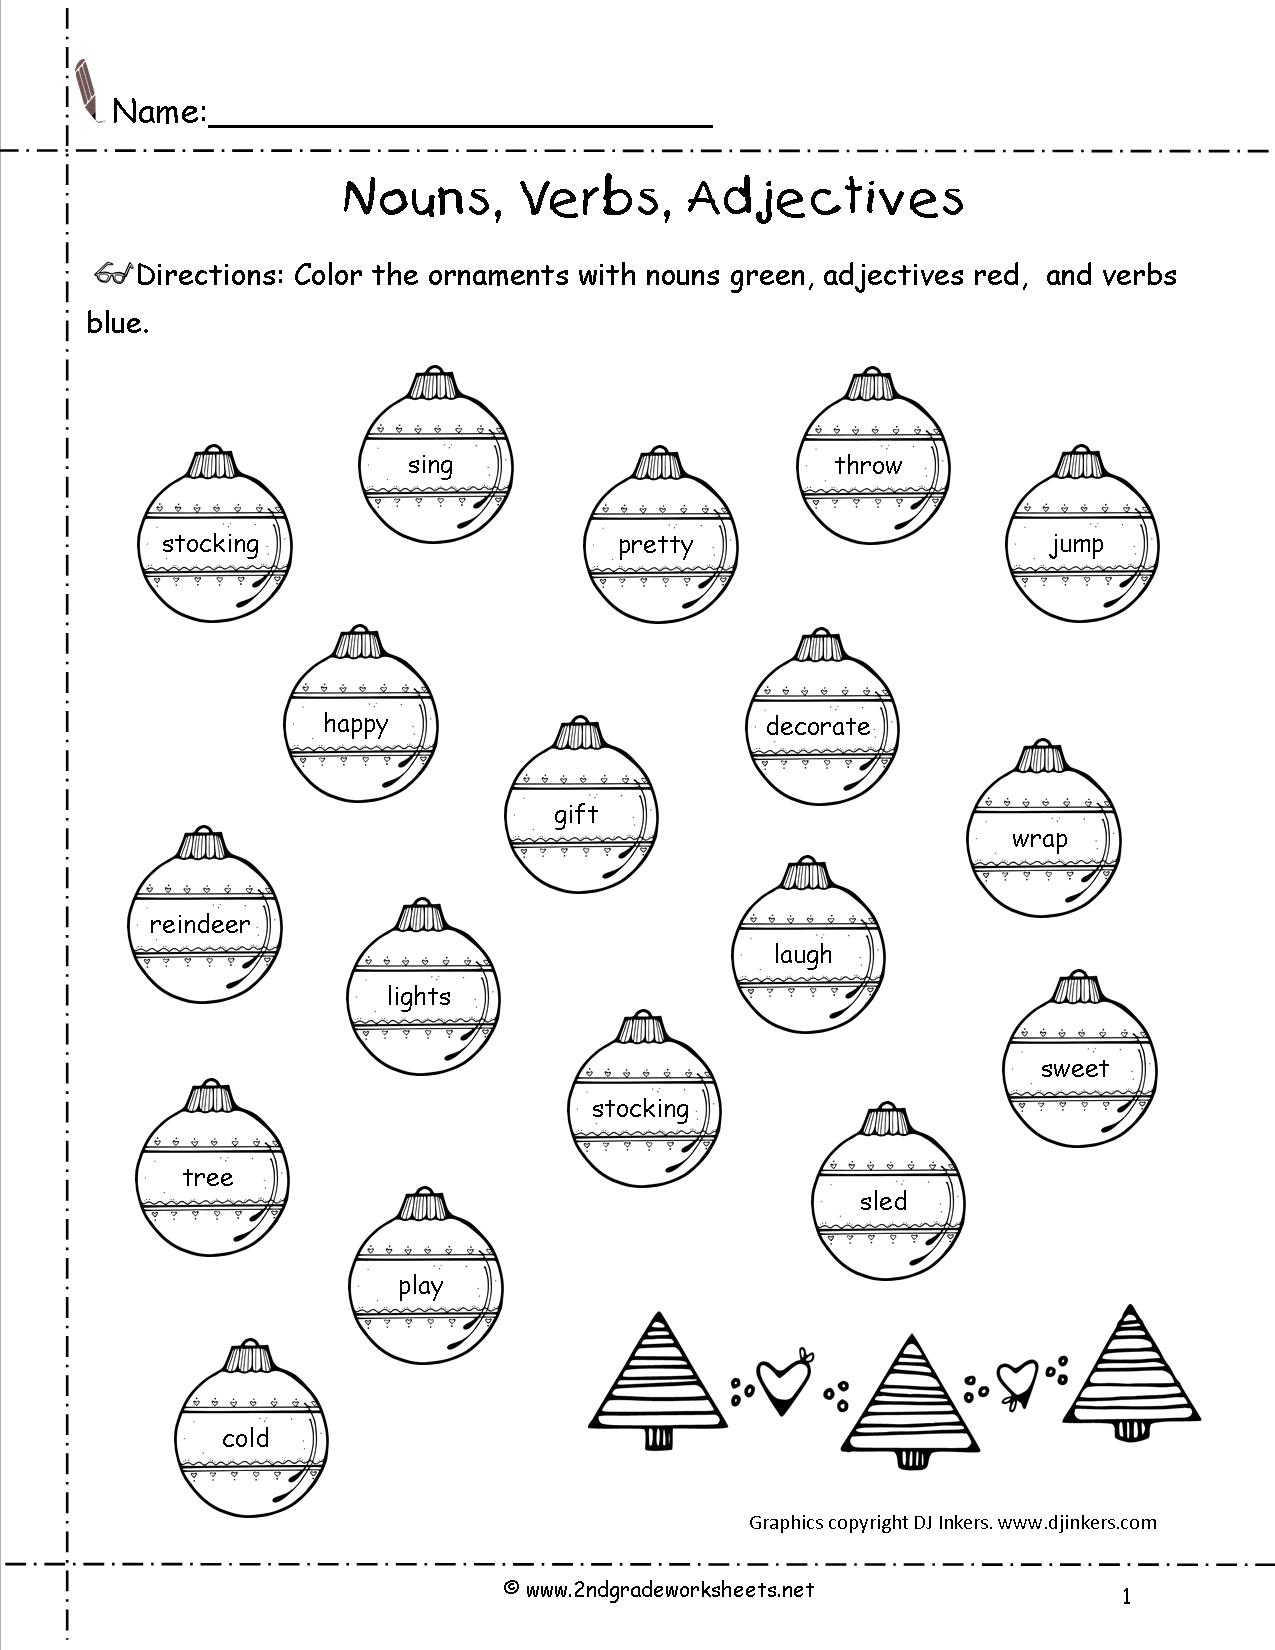 Christmas Worksheets And Printouts - Free Printable Christmas Worksheets